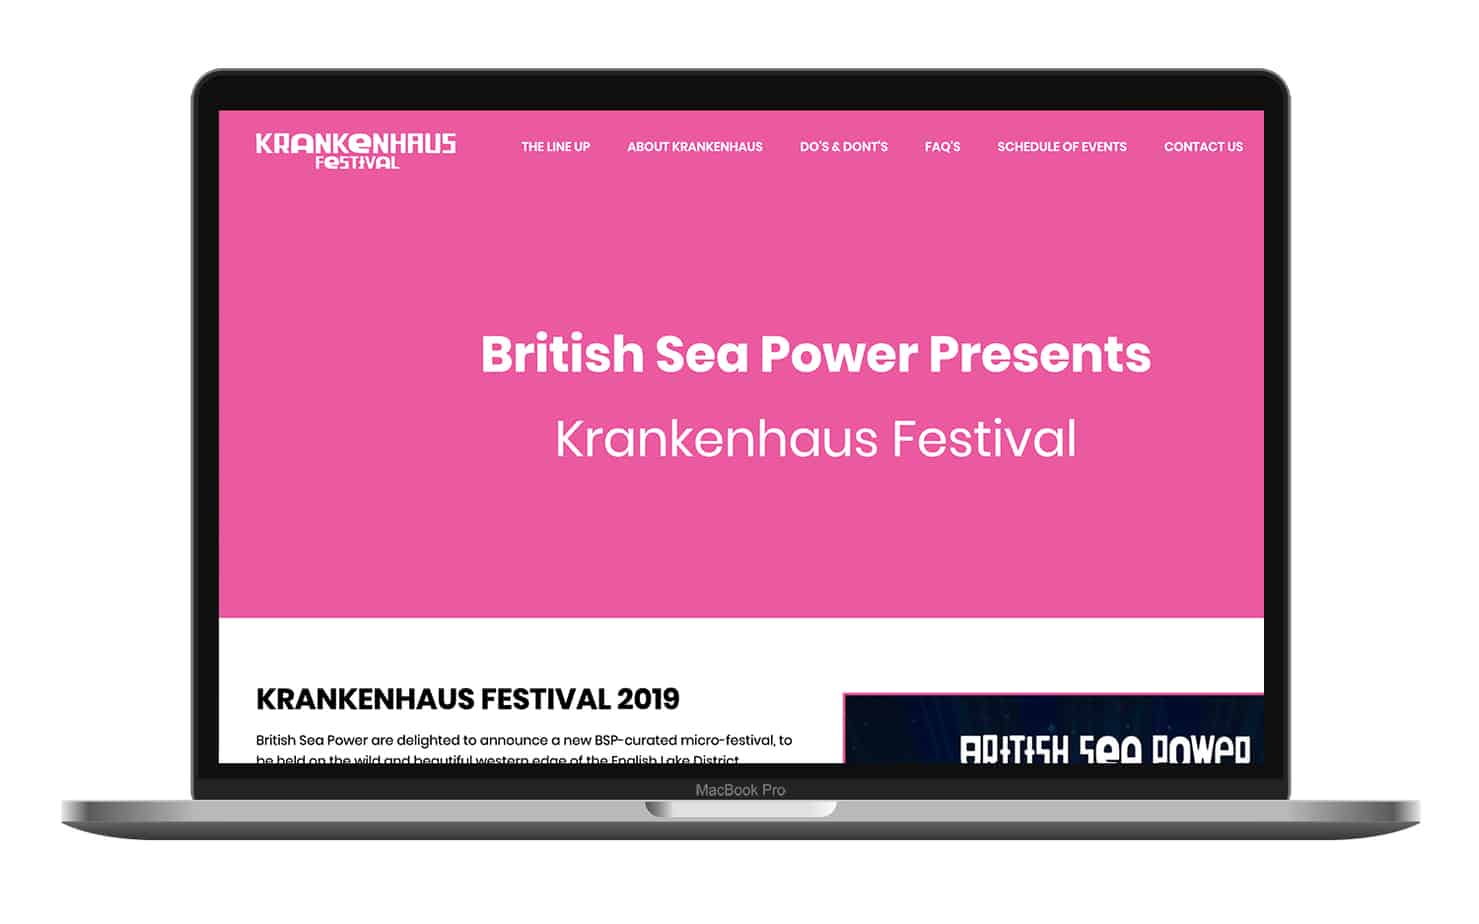 Krankenhaus festival website design project